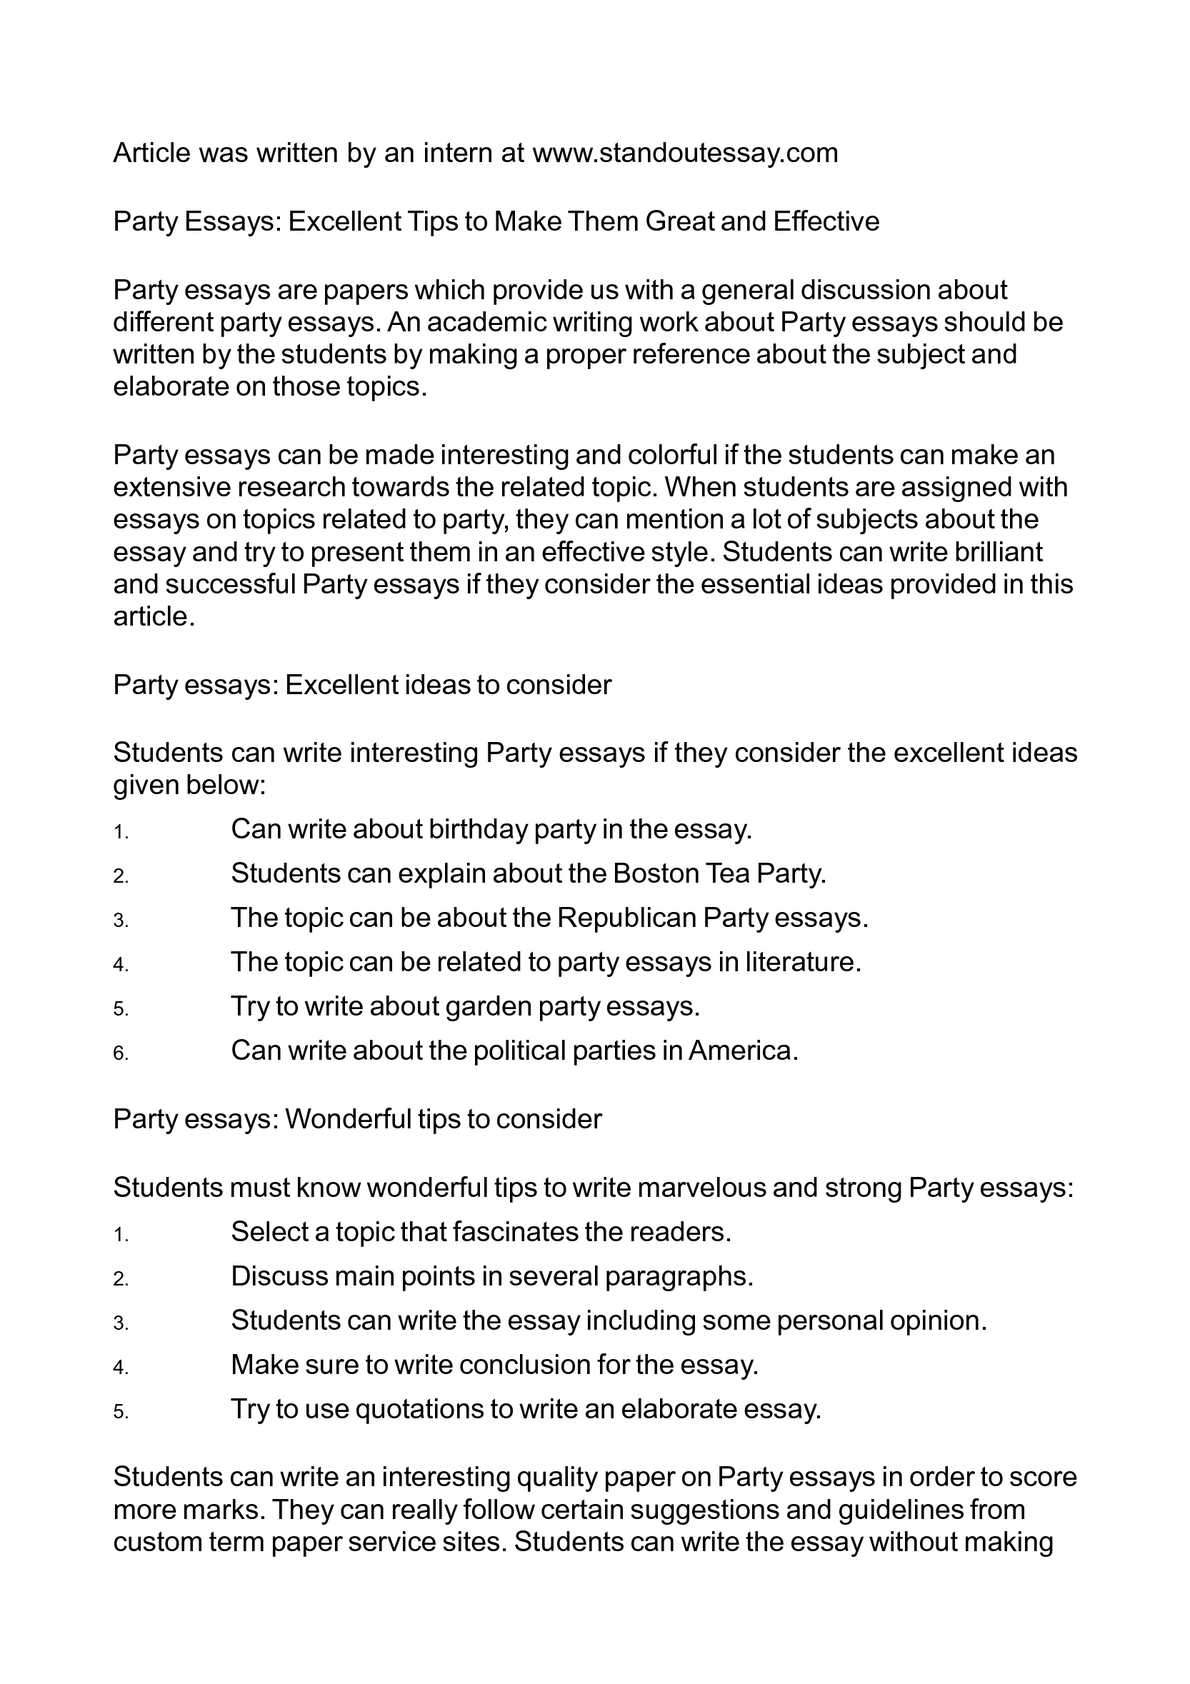 essay on political parties in america